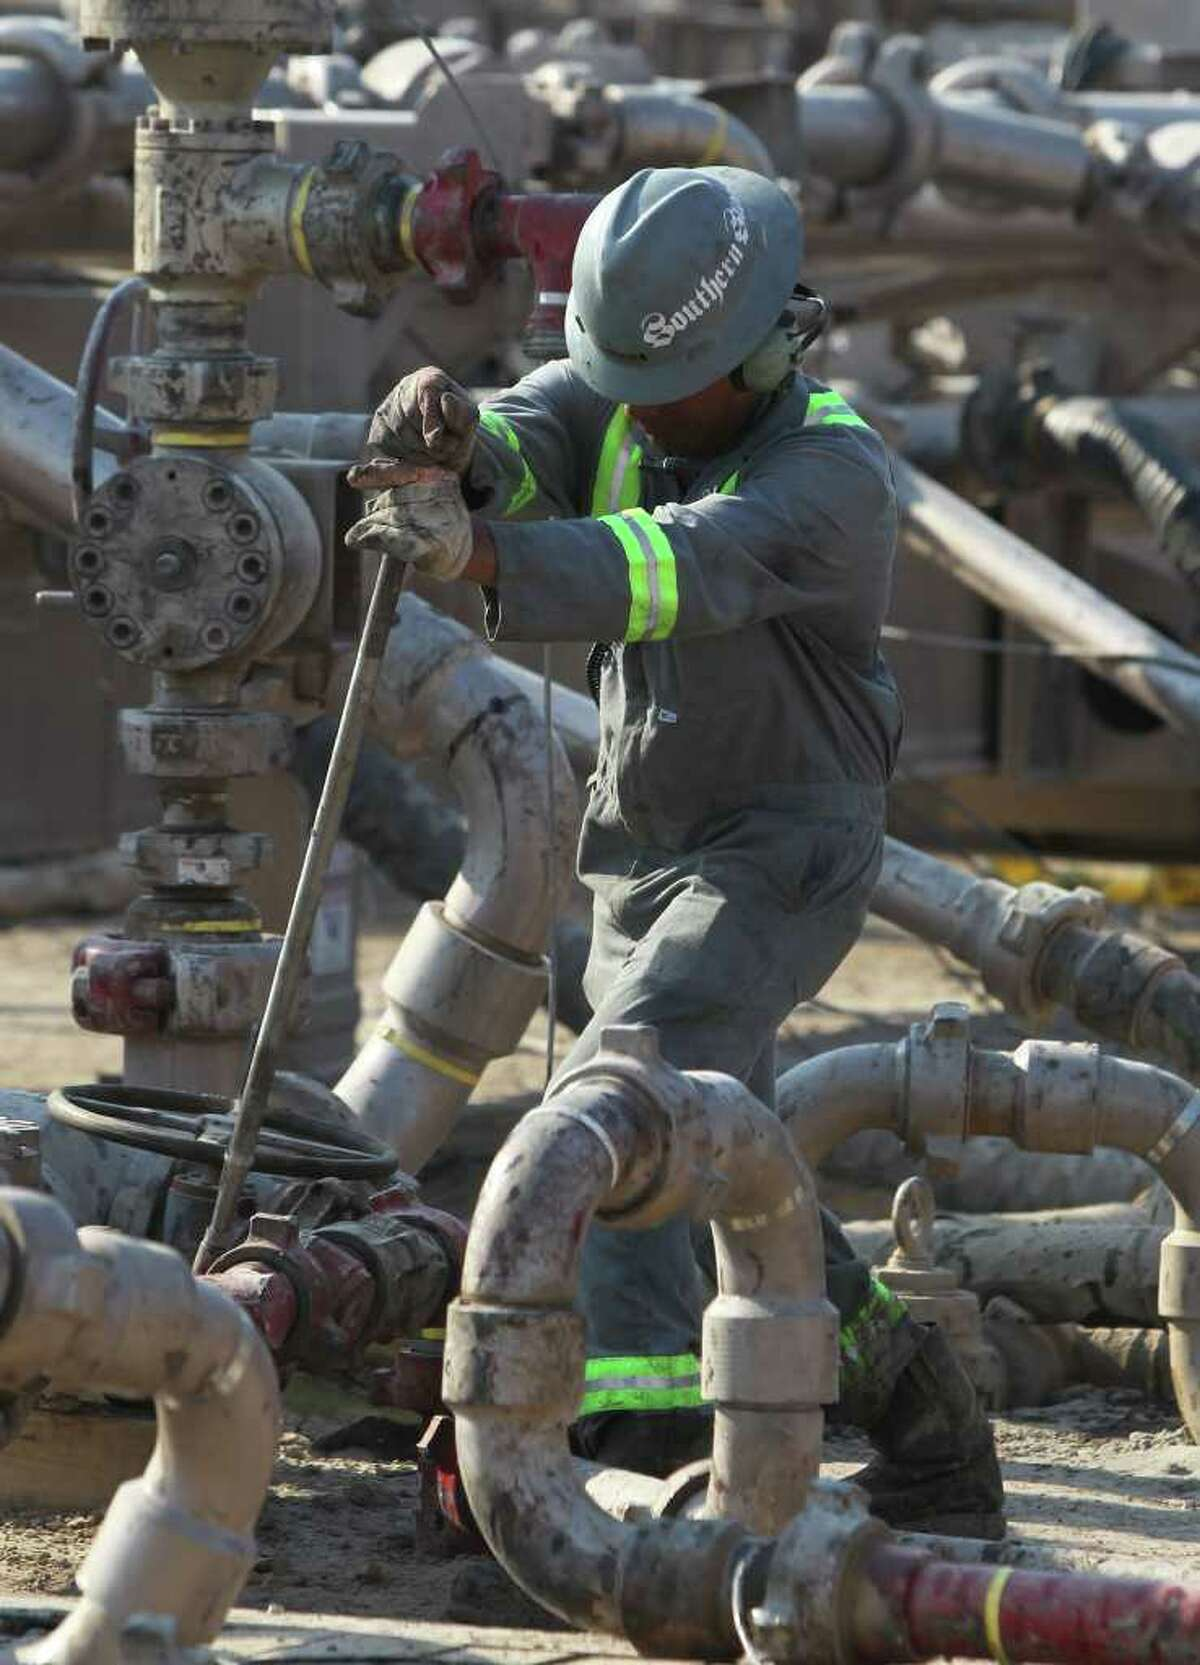 An oilfield employee works at a Talisman Energy fracking site near Cotulla. A reader asks if energy drilling sites (including the Eagle Ford Shale area) have limits placed on them when it comes to water, especially at a time when drought has lowered levels in aquifers and individual wells.